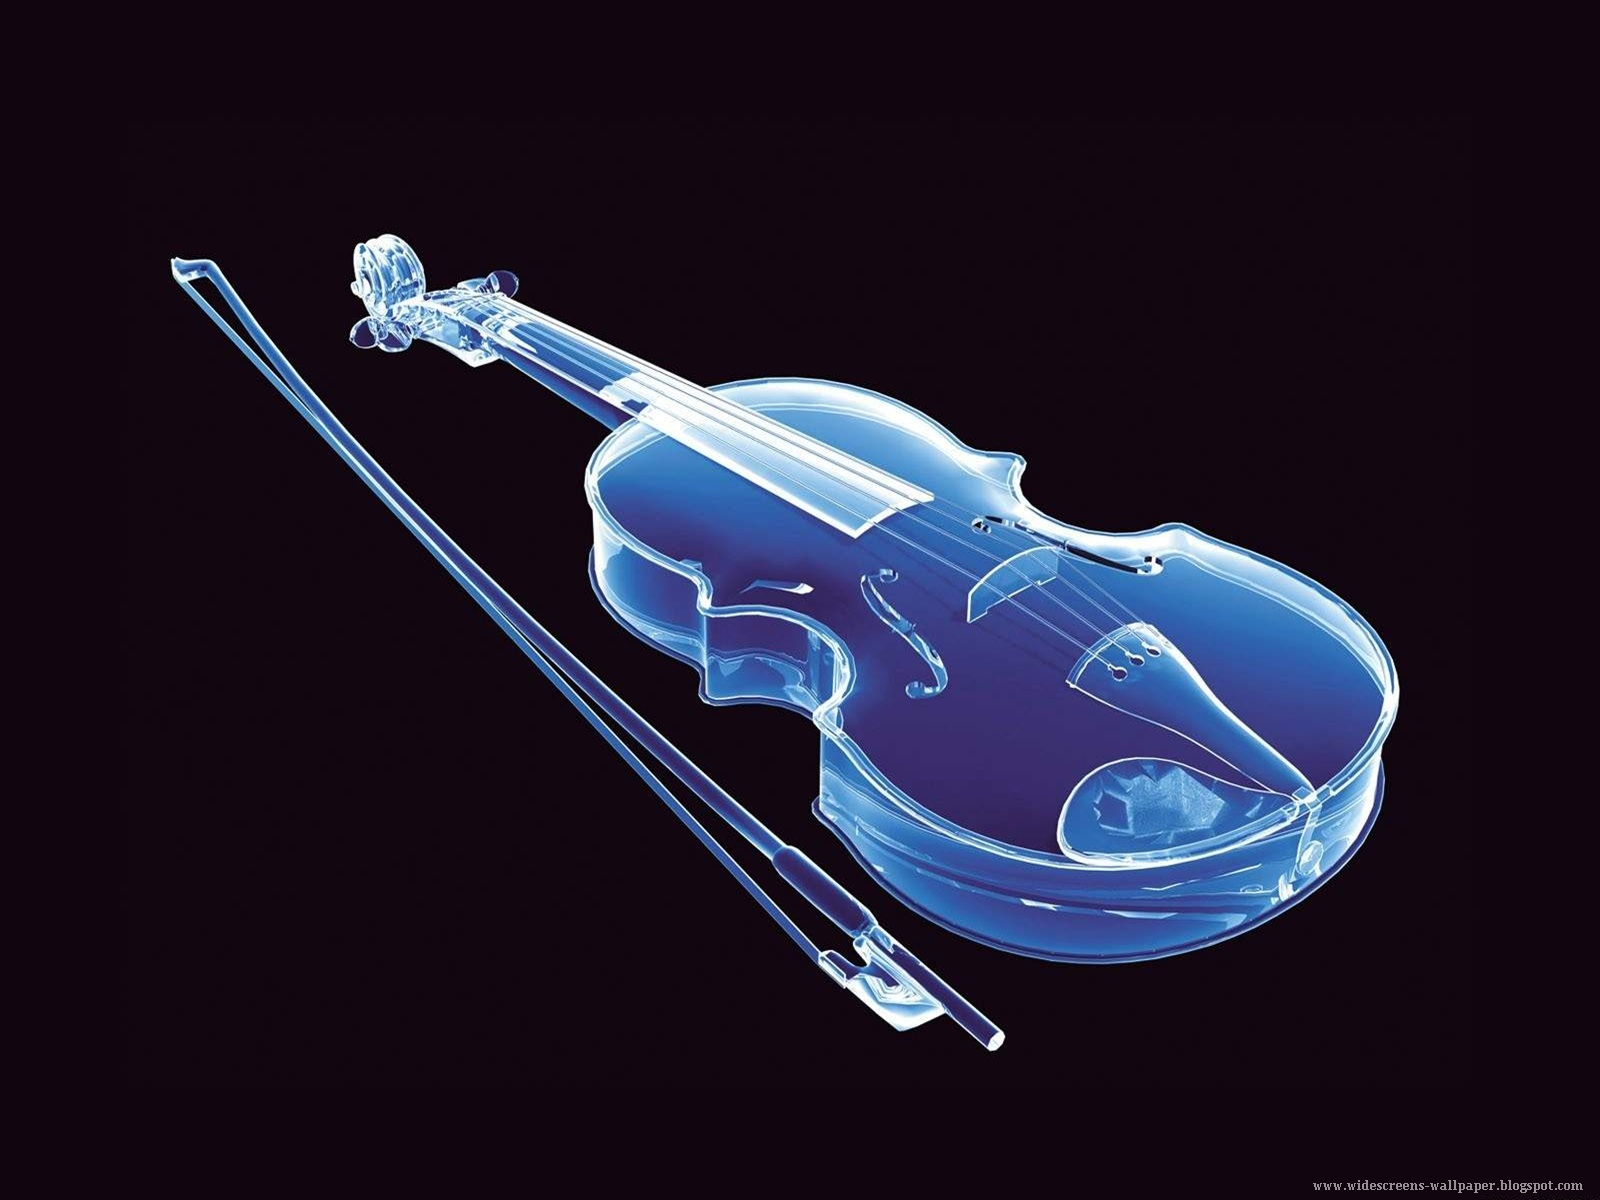 Transparent blue violin wallpaper - Music Violins Collection